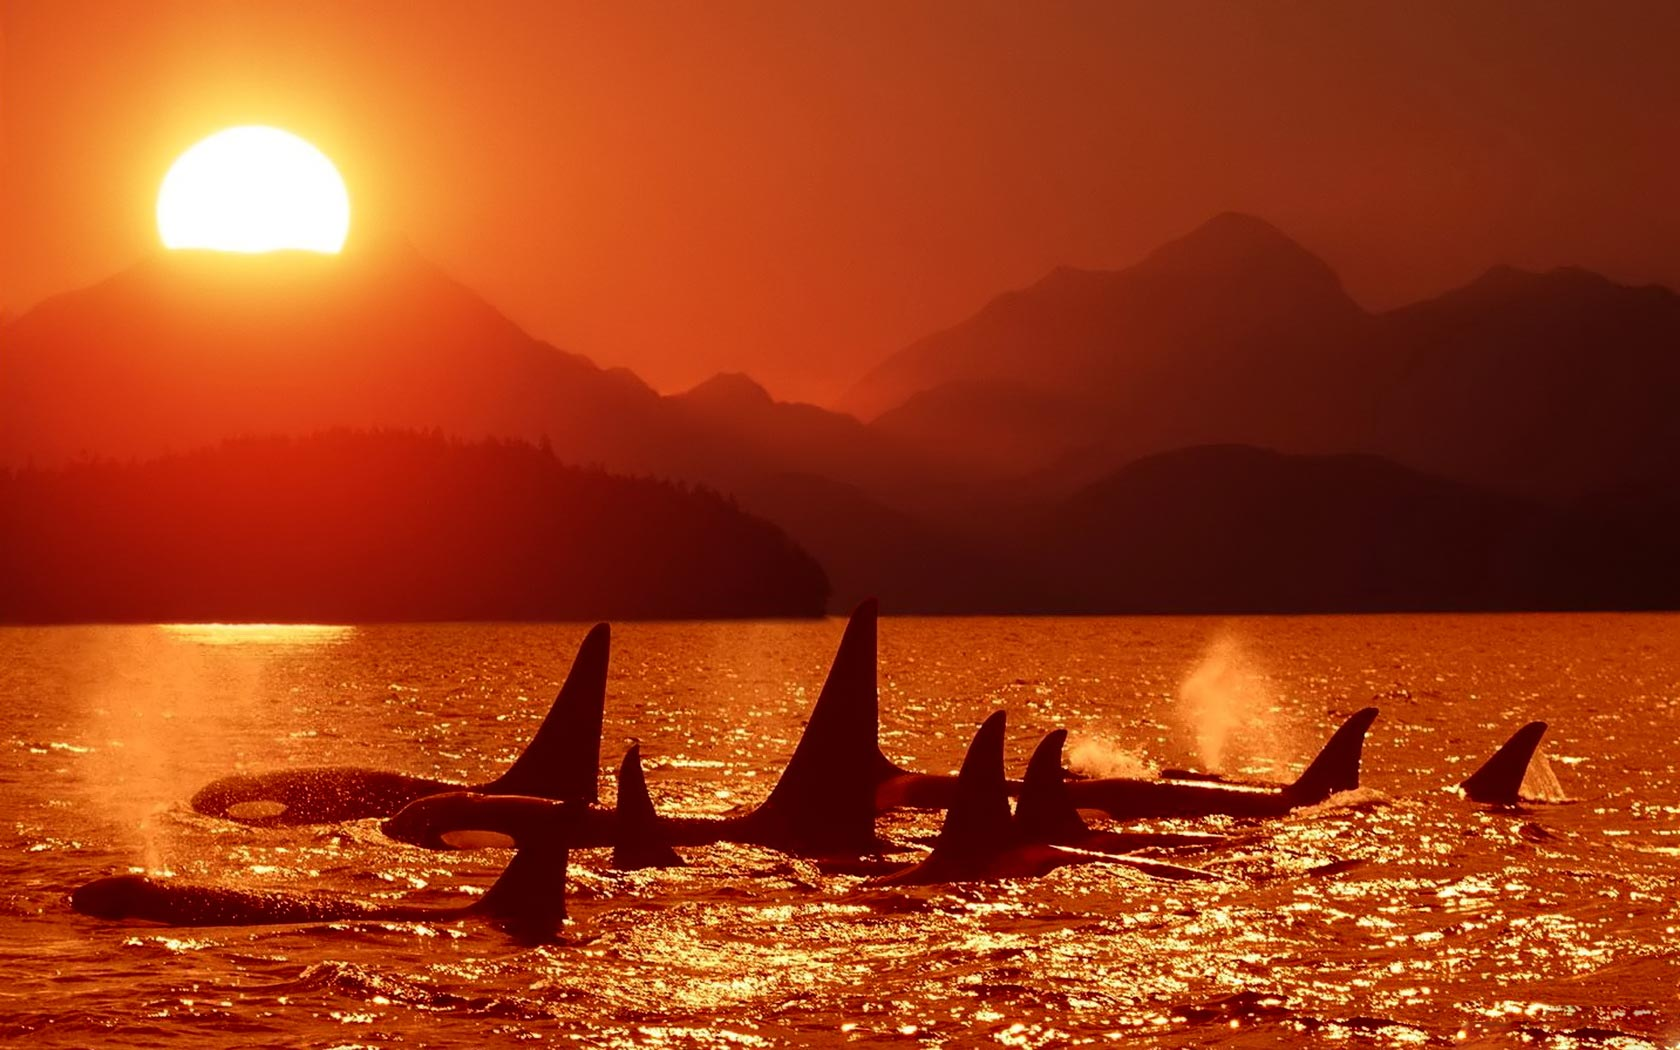 orca whales 1680x1050